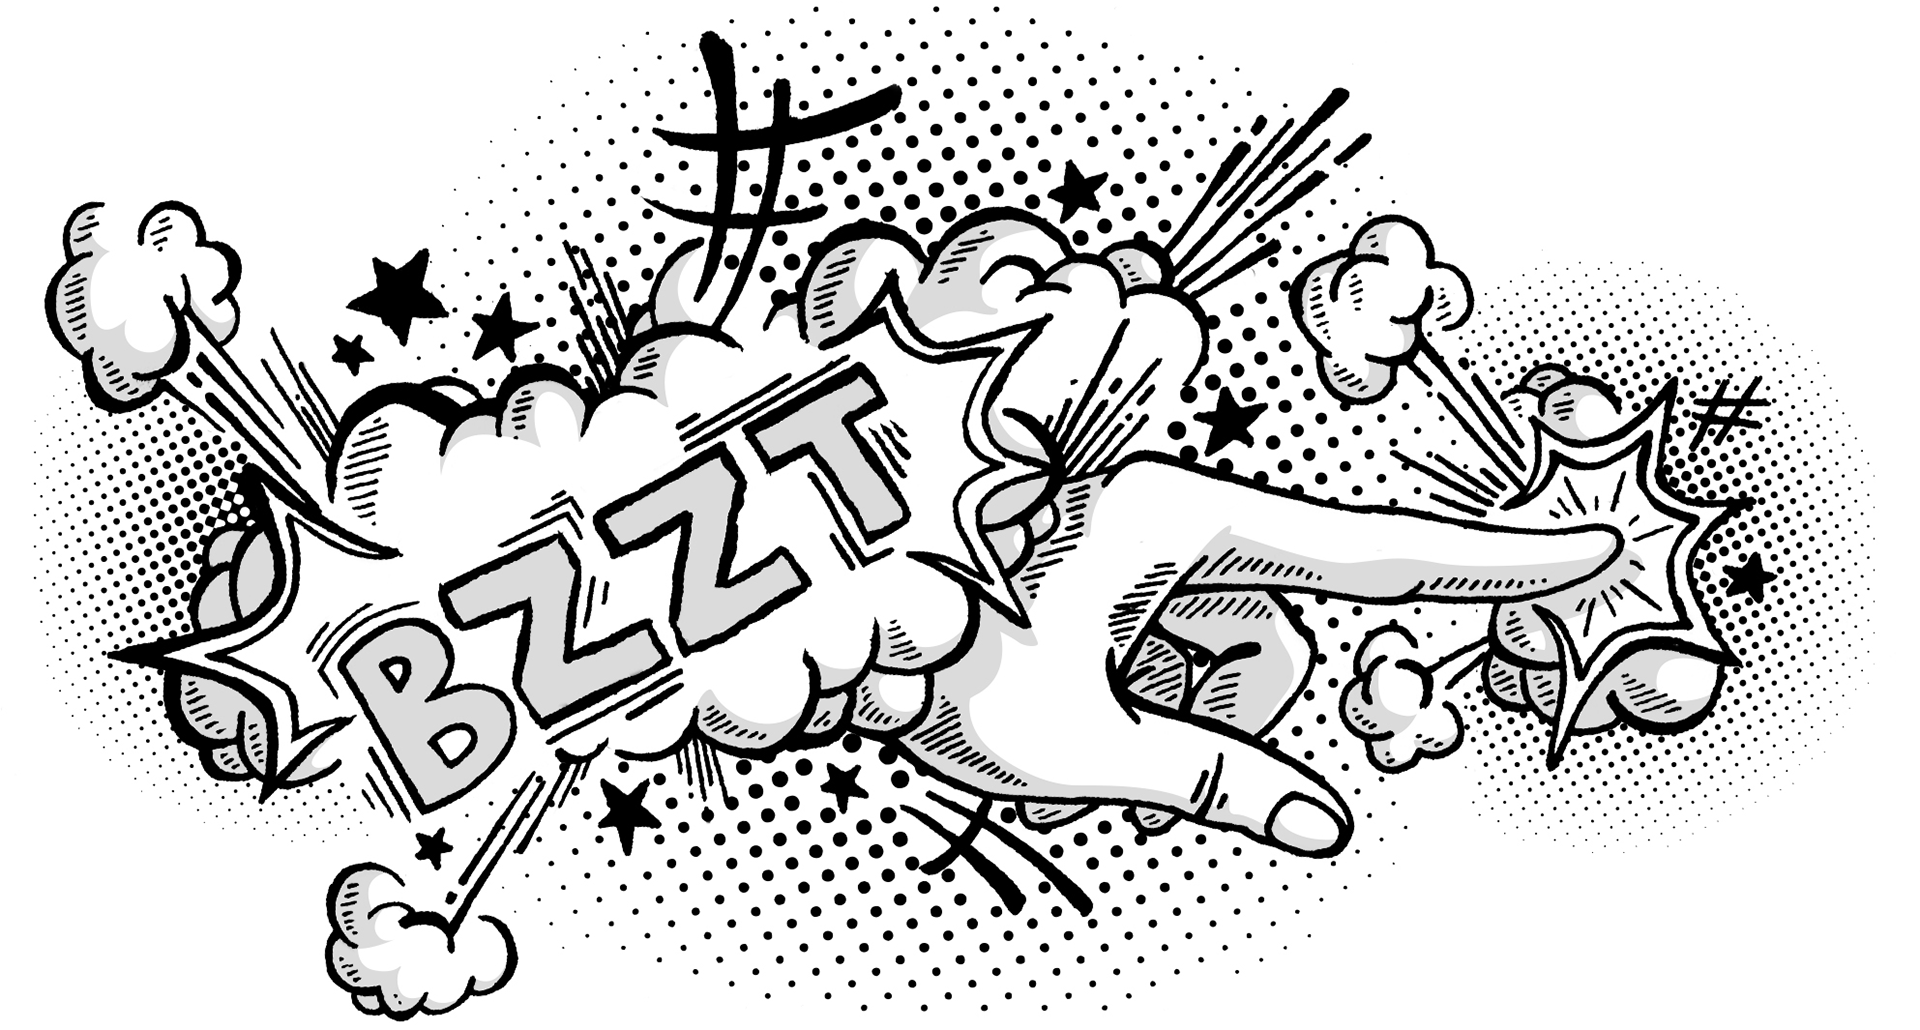 Illustration of a hand pointing with many symbolic noises surrounding it.